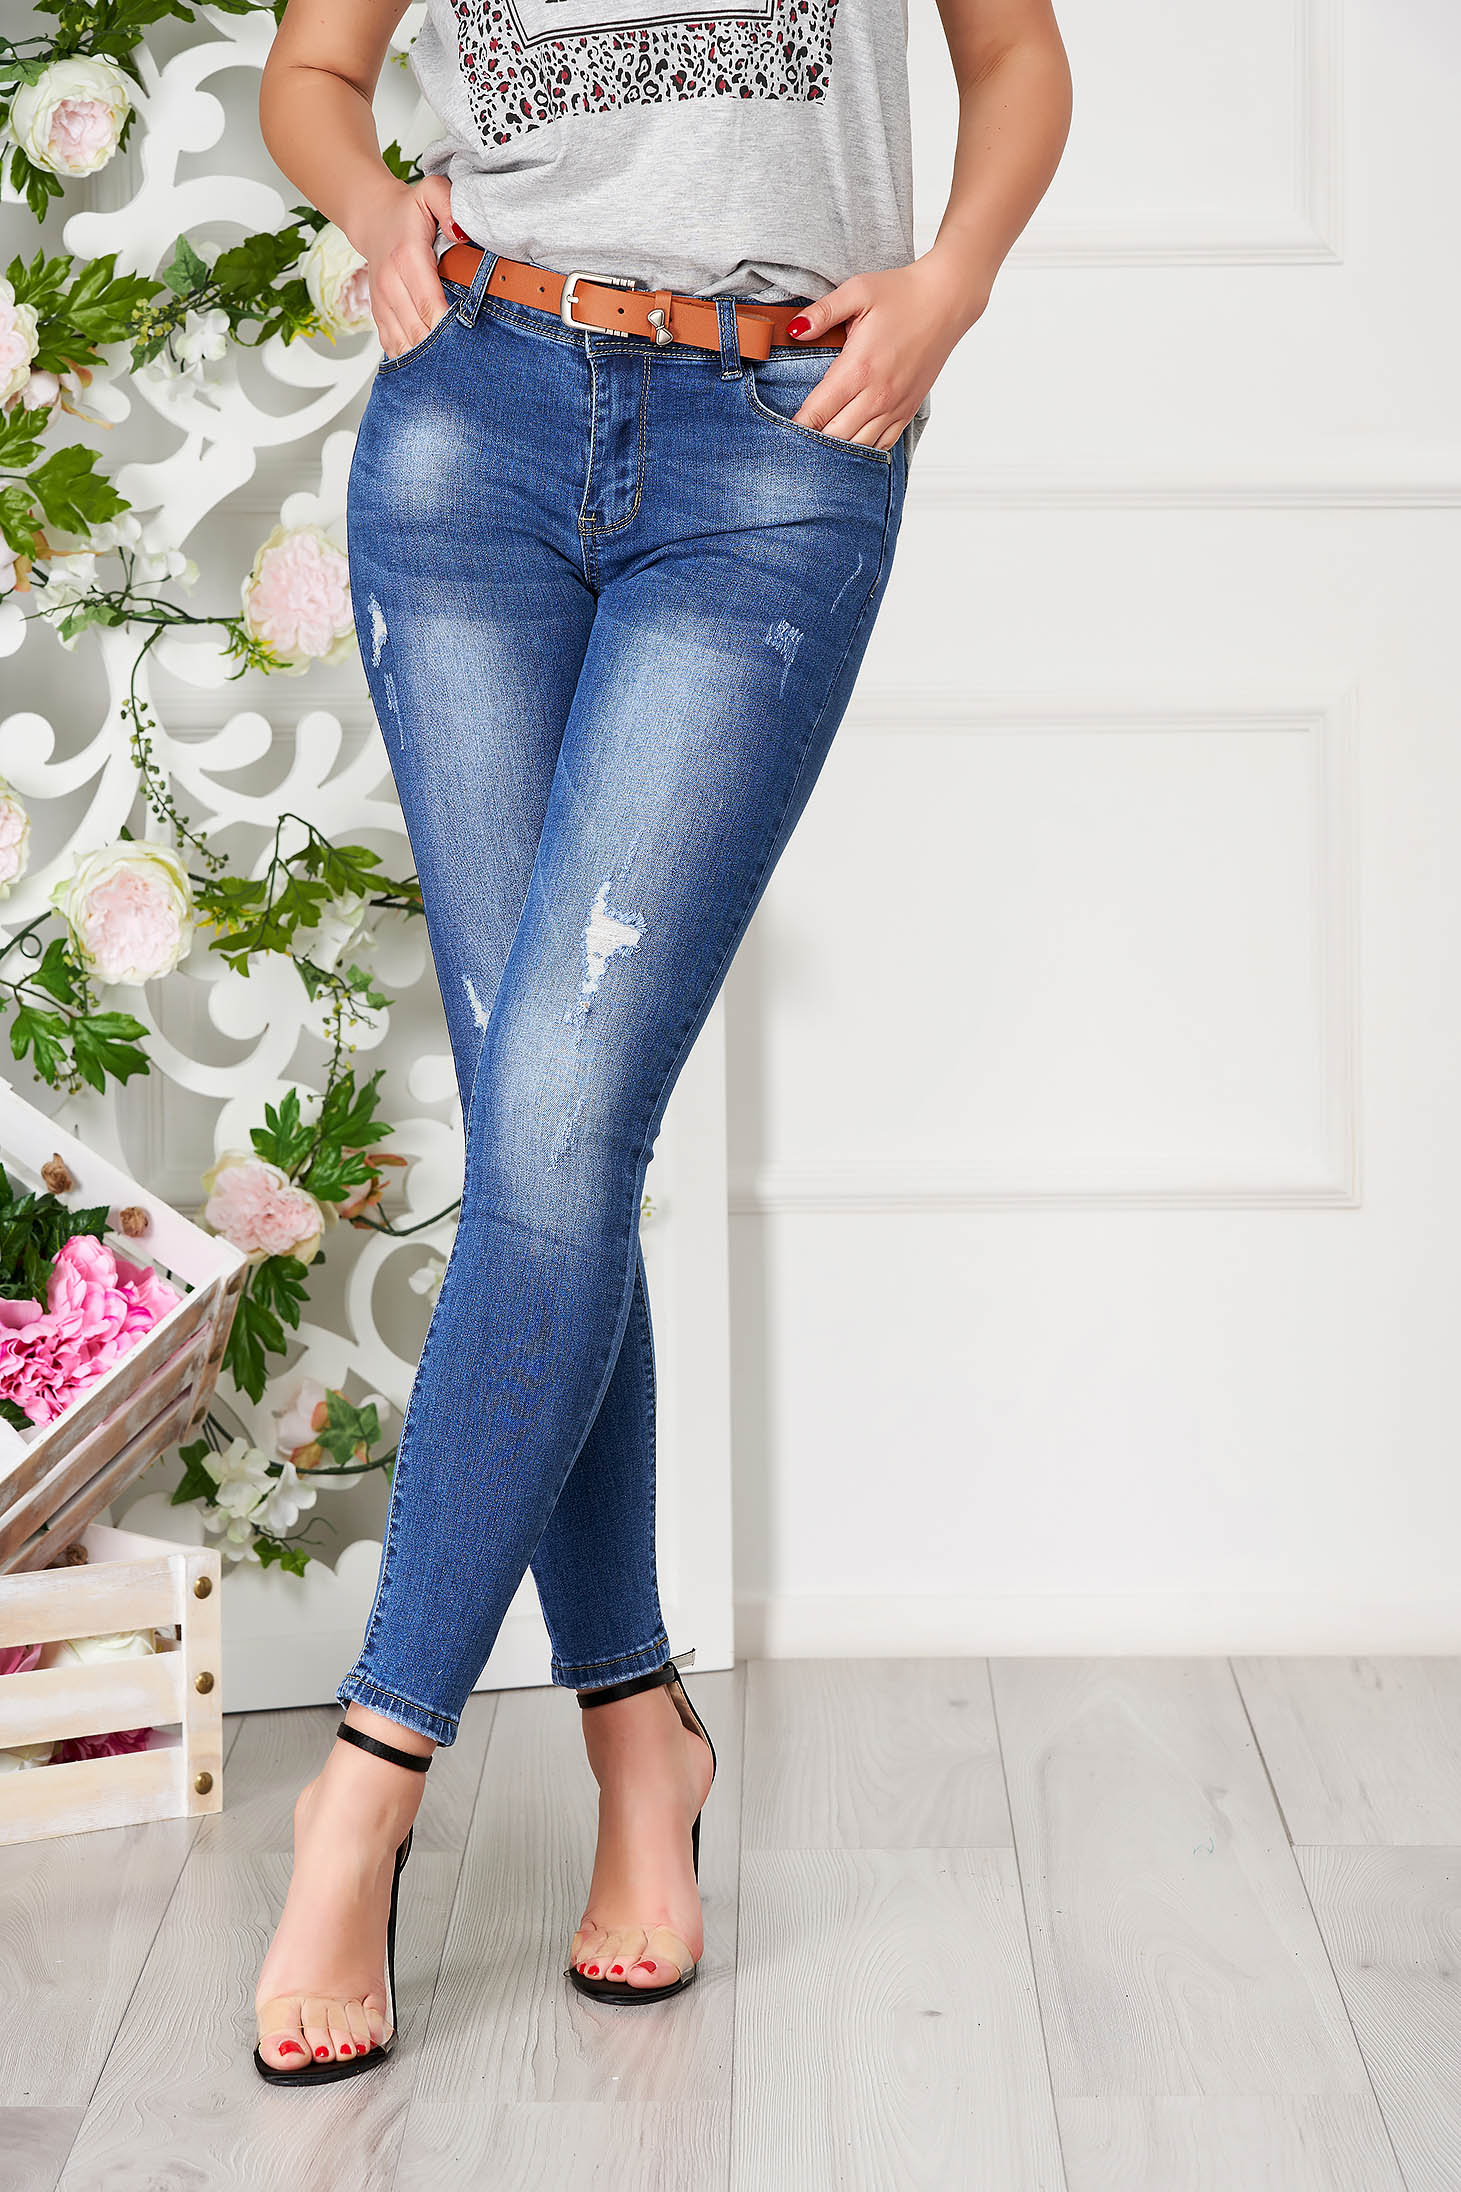 Blue jeans casual high waisted accessorized with belt small rupture of material